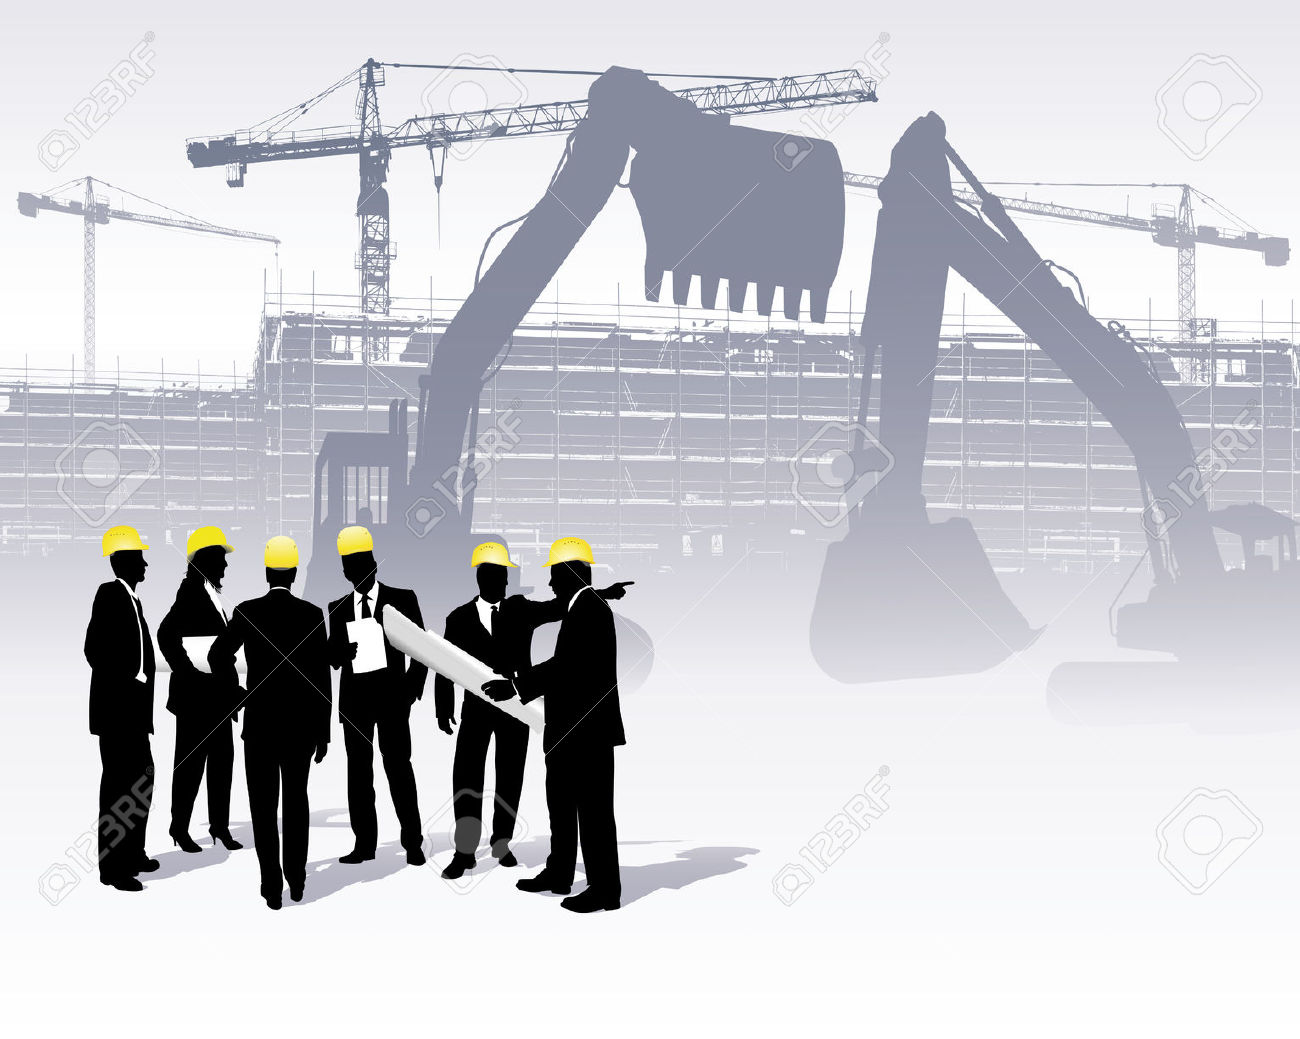 Site engineer clipart vector black and white download Architects On A Construction Site Royalty Free Cliparts, Vectors ... vector black and white download